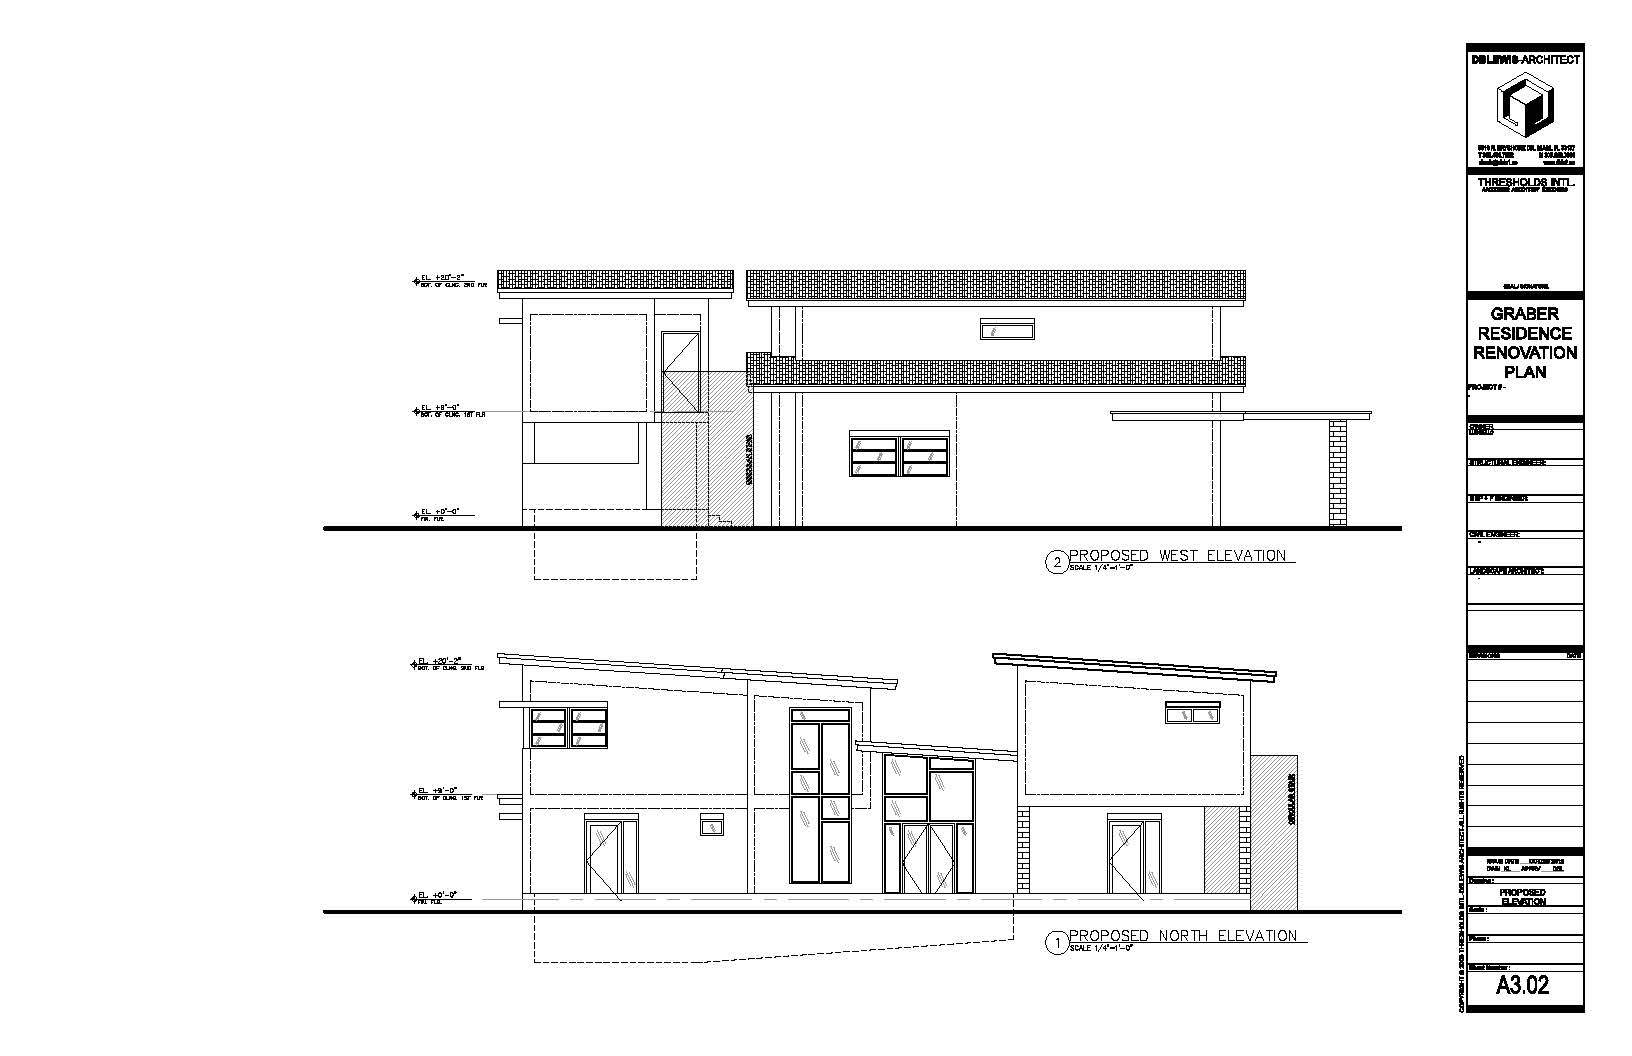 Graber Residence. West & North proposed elevations